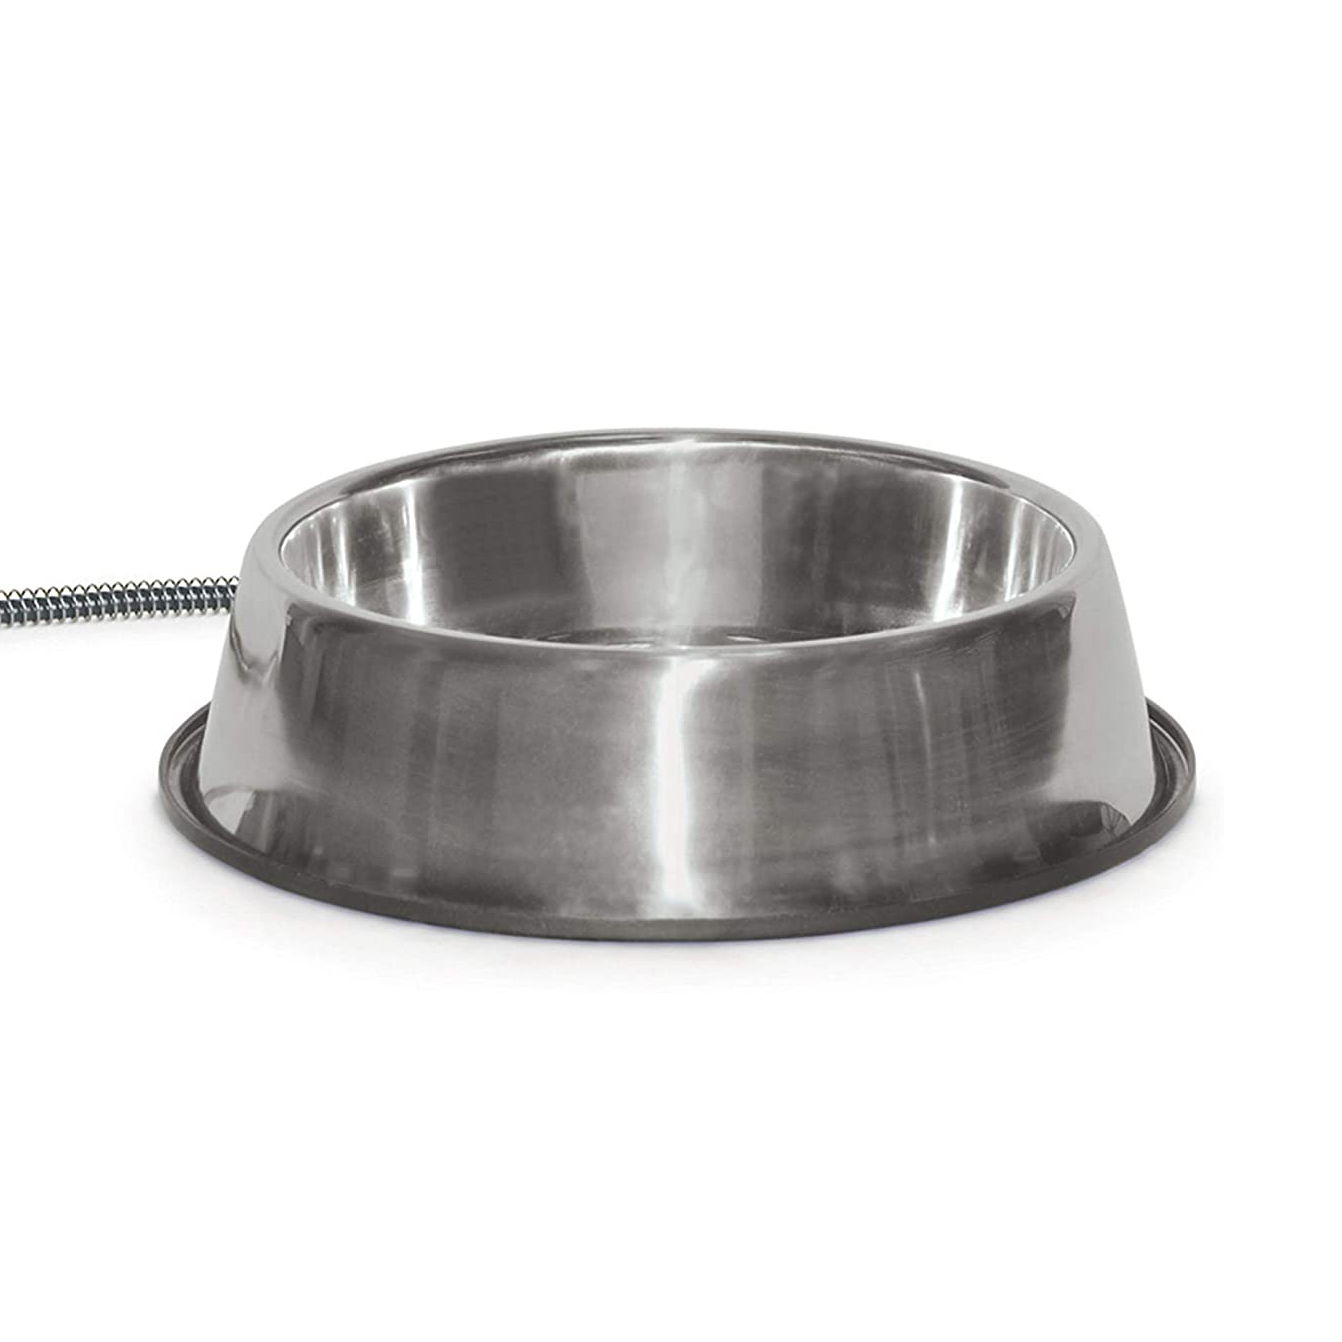 k-and-h-pet-products-stainless-steel-dog-bowl